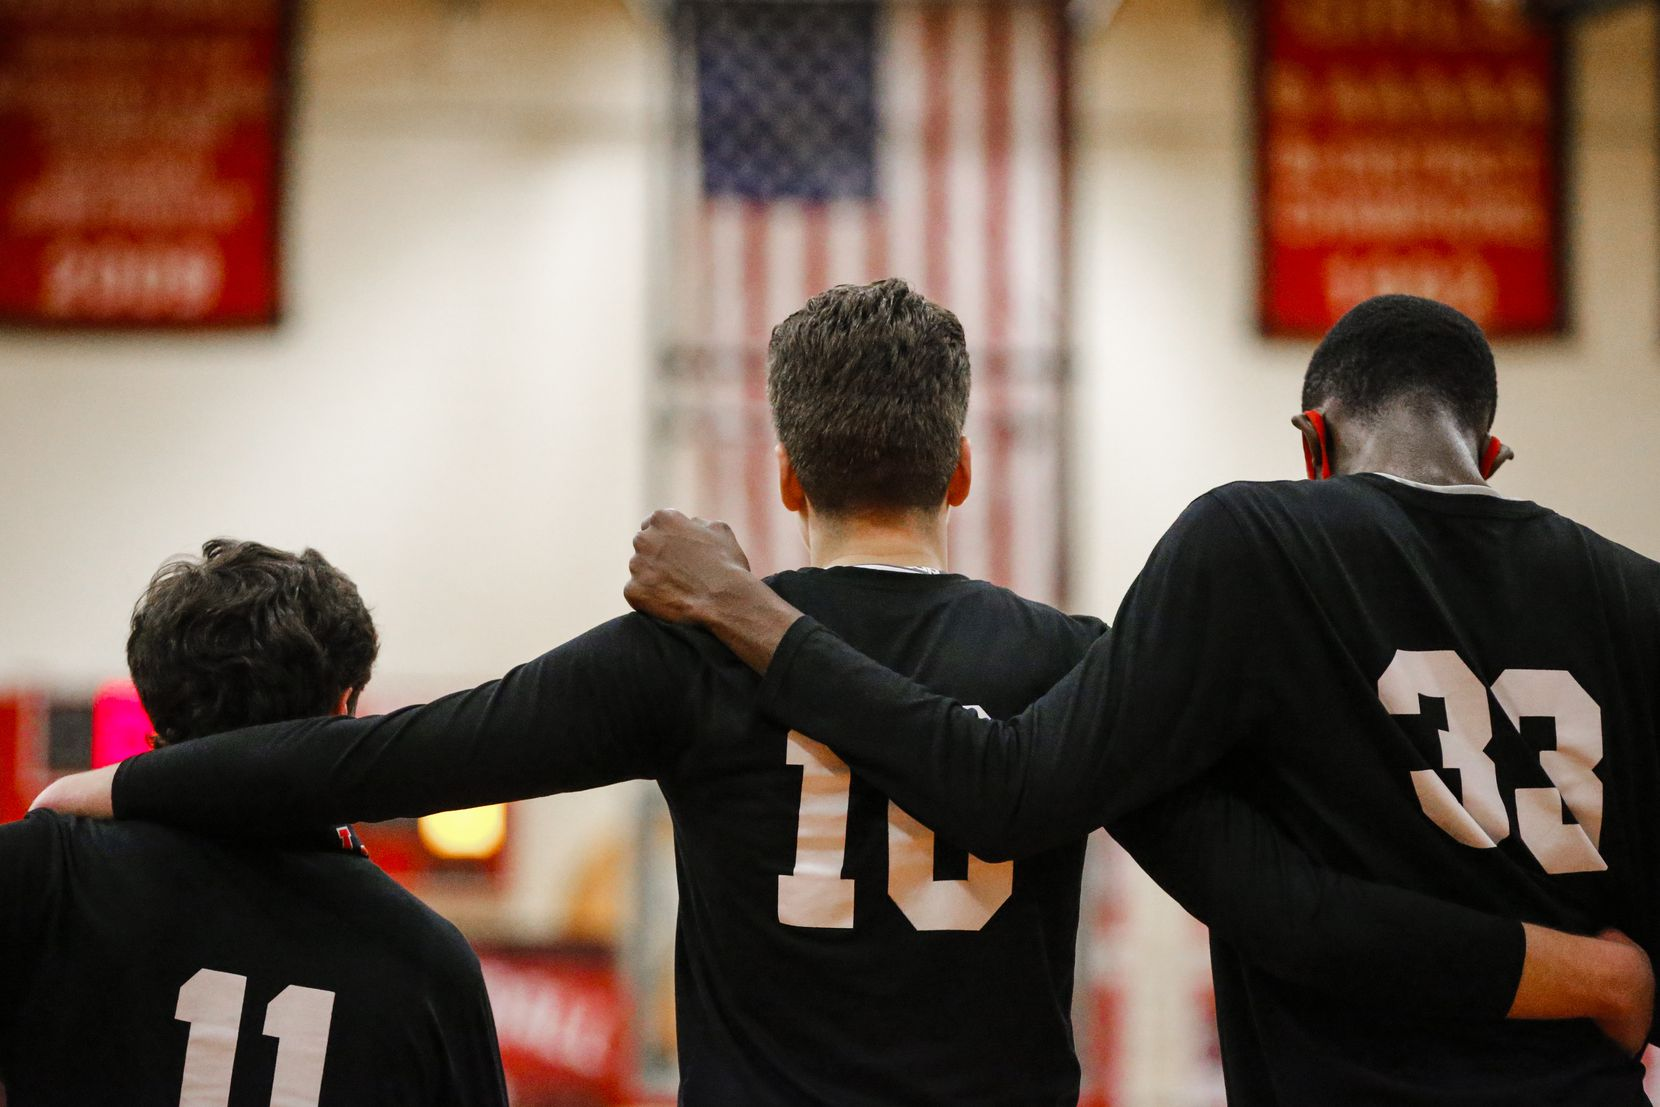 Lake Highlands senior forward Mohamad Shamait (10) stands with his teammates during the National Anthem before a high school basketball game against Irving Nimitz, Friday, February 5, 2021. Lake Highlands won 75-45.  Shamait and his family originally lived in Syria but fled to escape civil war within the country. They moved to Jordan, before finally arriving in the United States.